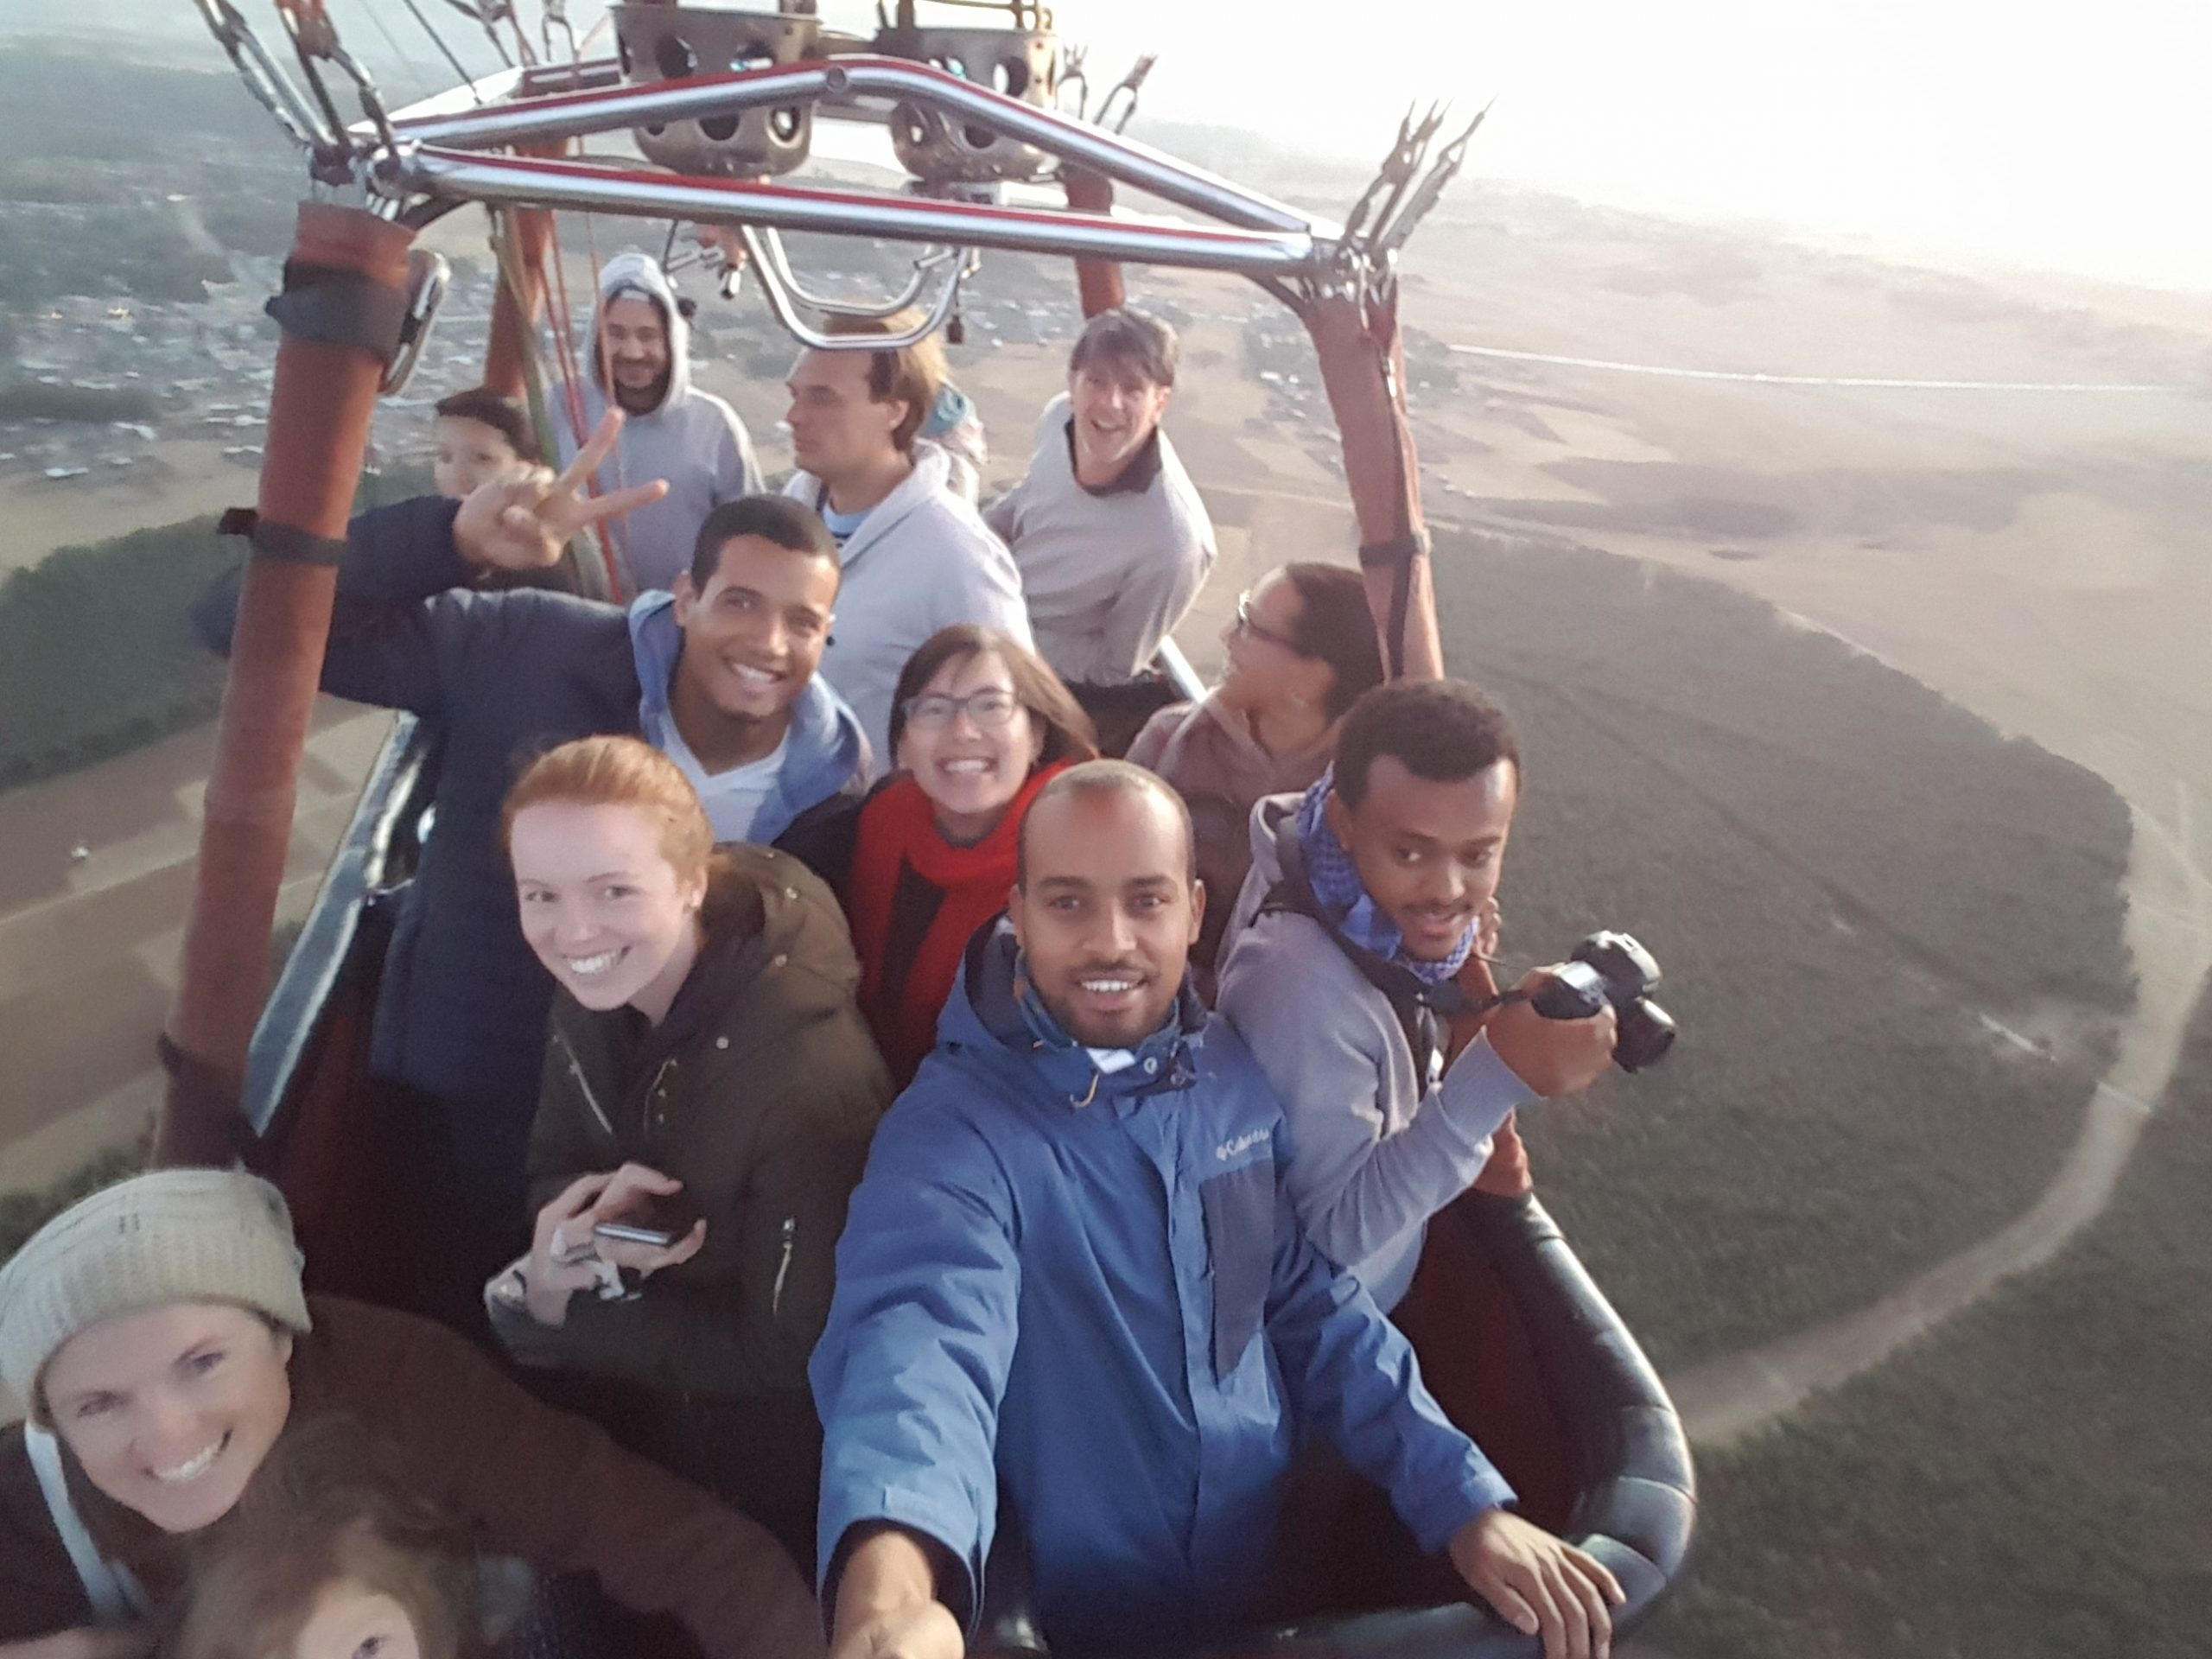 Sunrise balloon flight Addis Ababa Thursday 24 December 2020